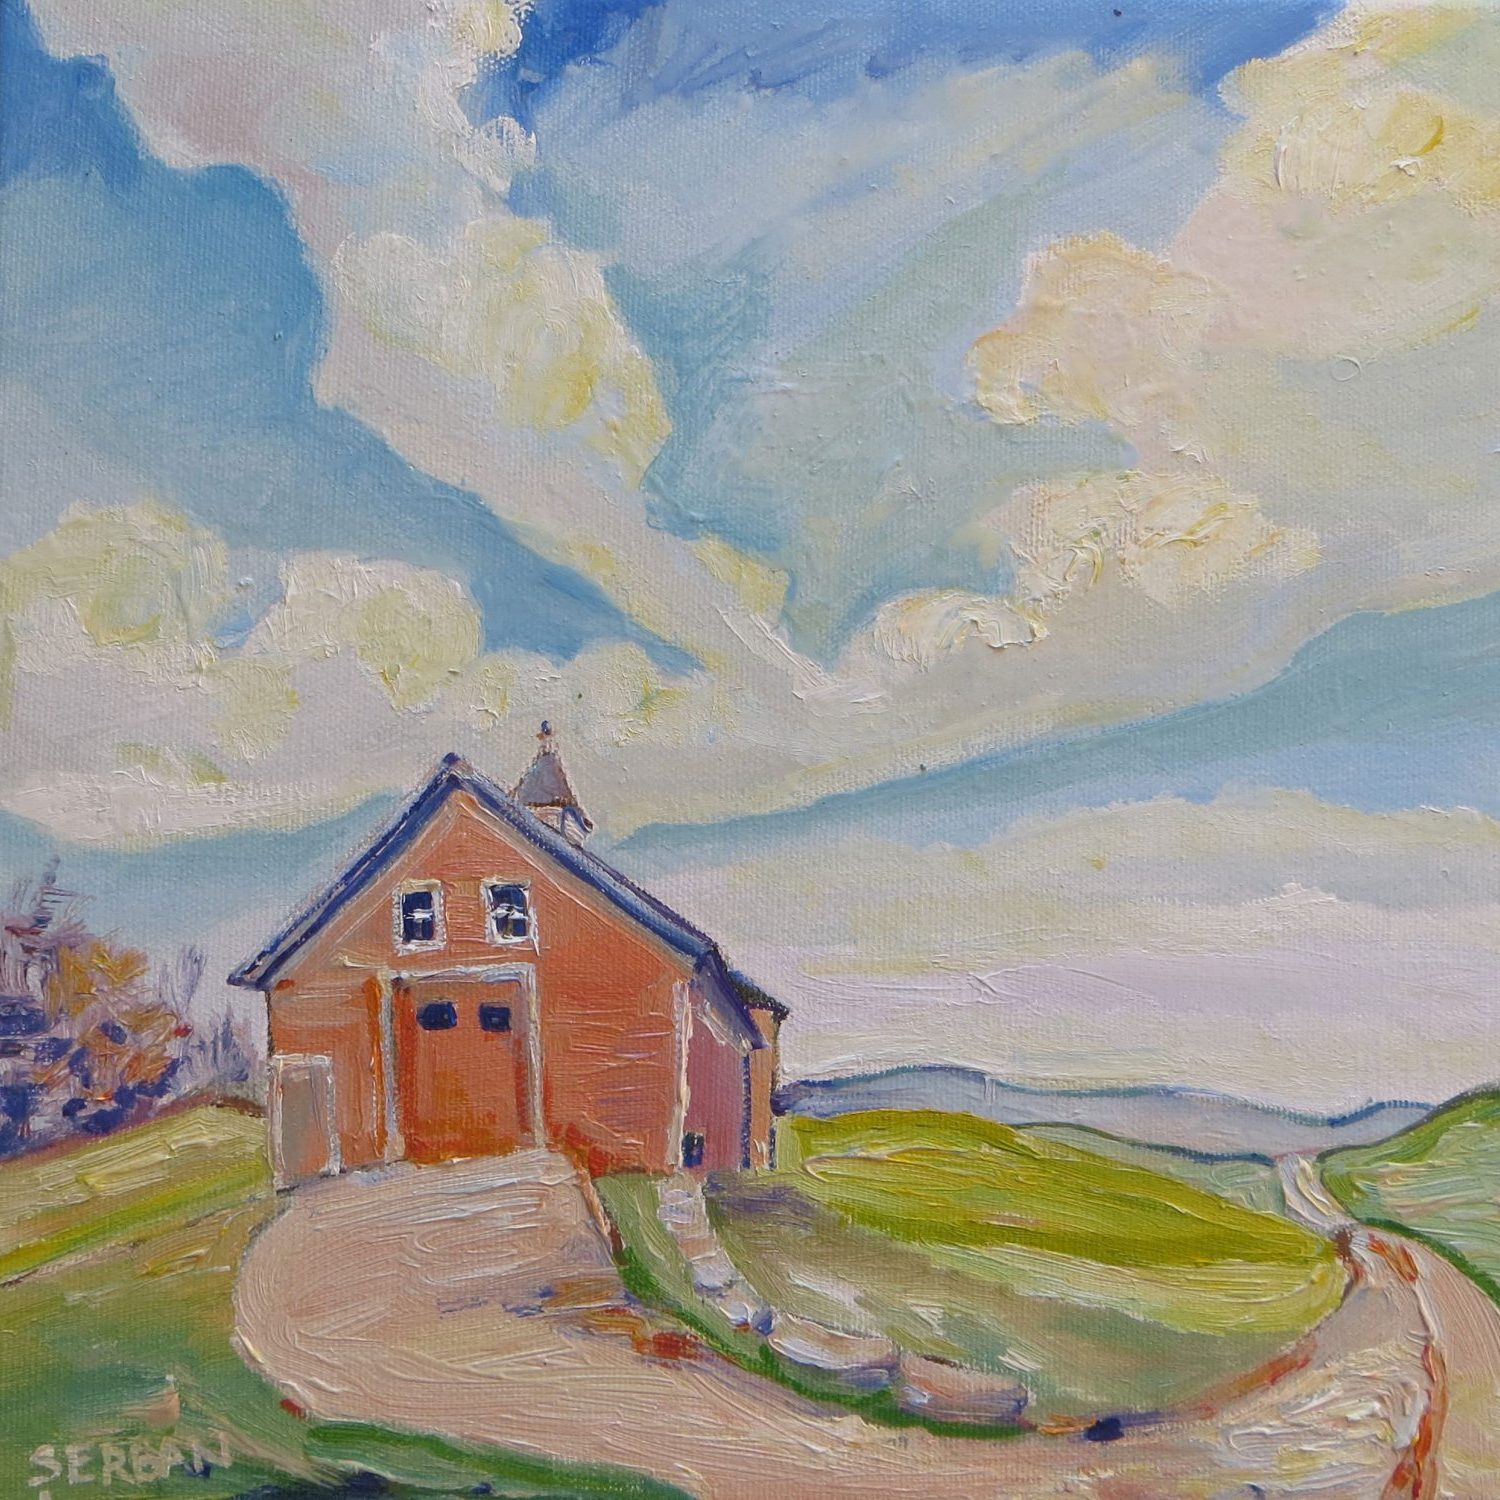 a painting of the Jacobson Barn at Storrs, UConn by artist Blanche Serban